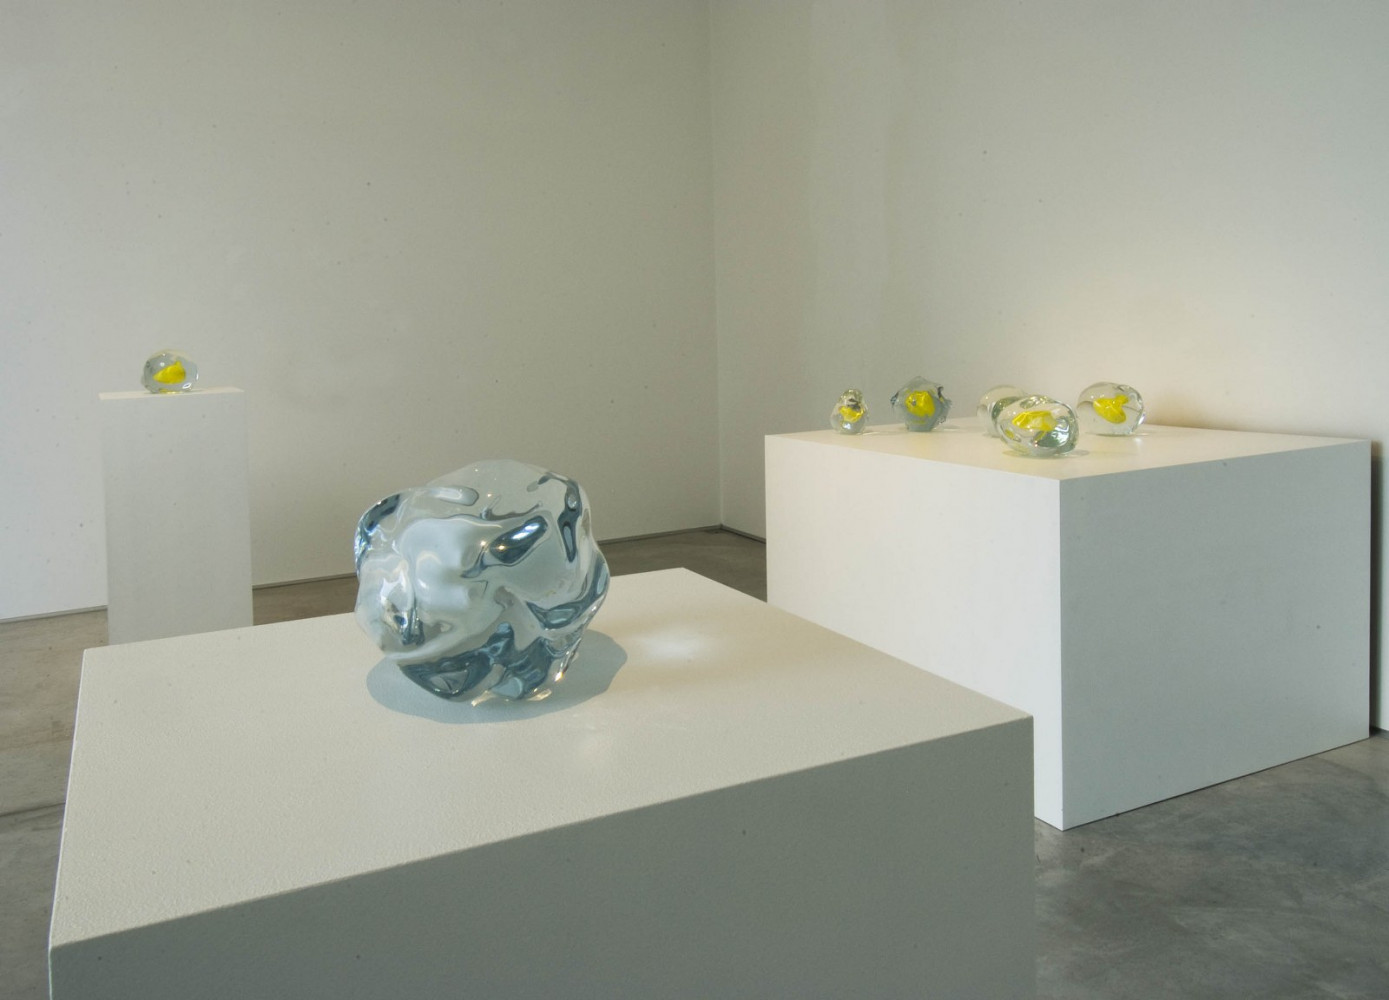 Wilhelm Mundt, 'Lawrence Carroll_Yellow works – Wilhelm Mundt_Yellow Murano glass scultpures', Installation view